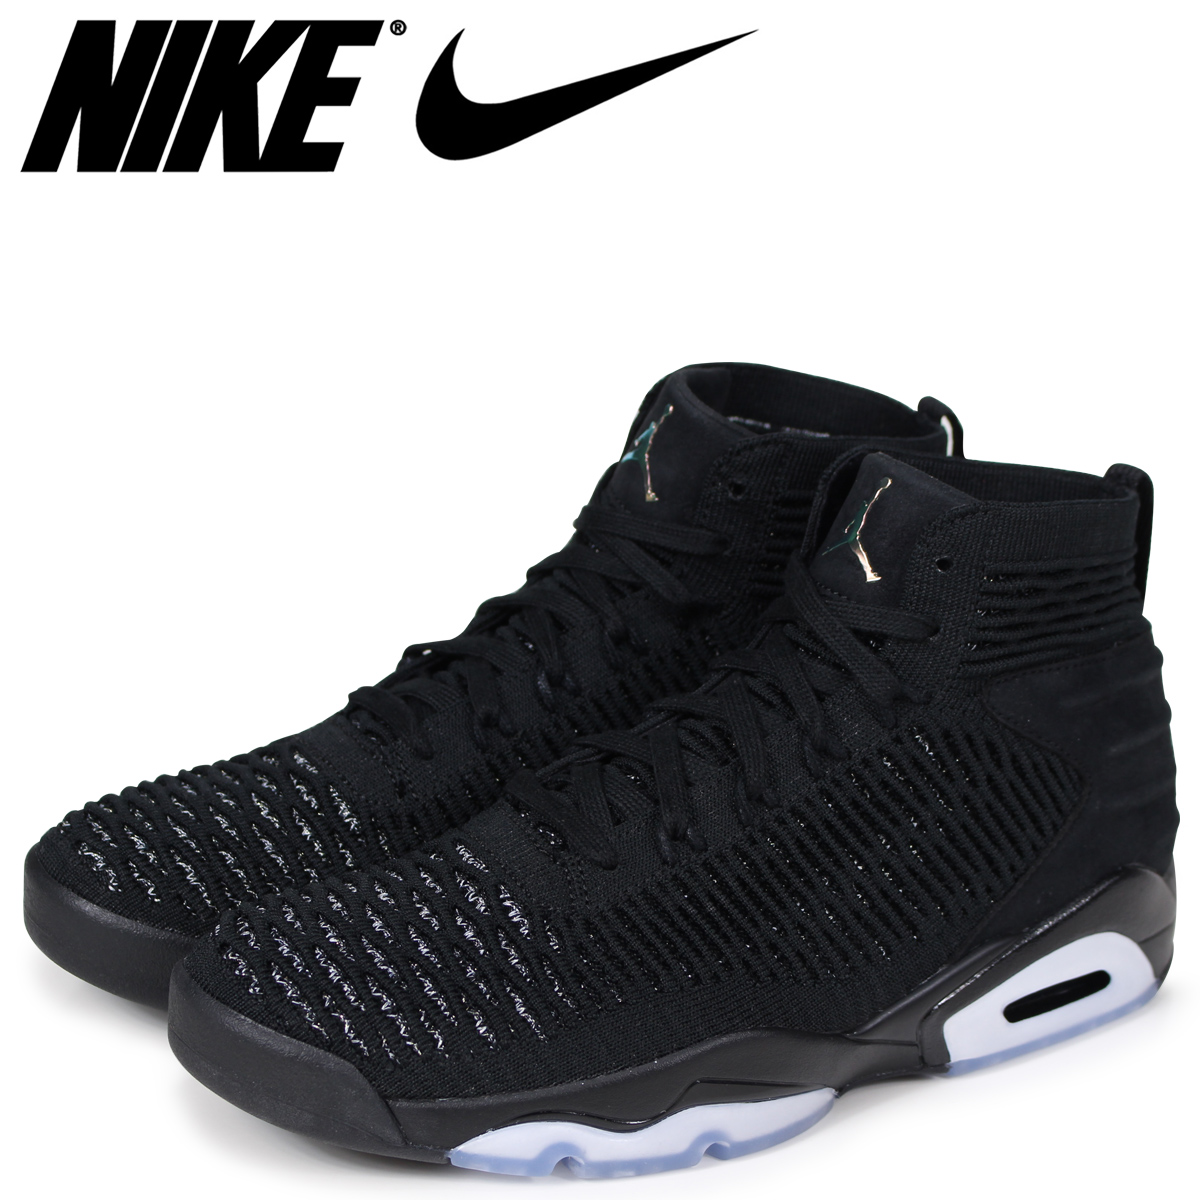 942b55191e3 NIKE Nike Jordan sneakers men JORDAN FLYKNIT ELEVATION 23 AJ8207-010 black  black ...